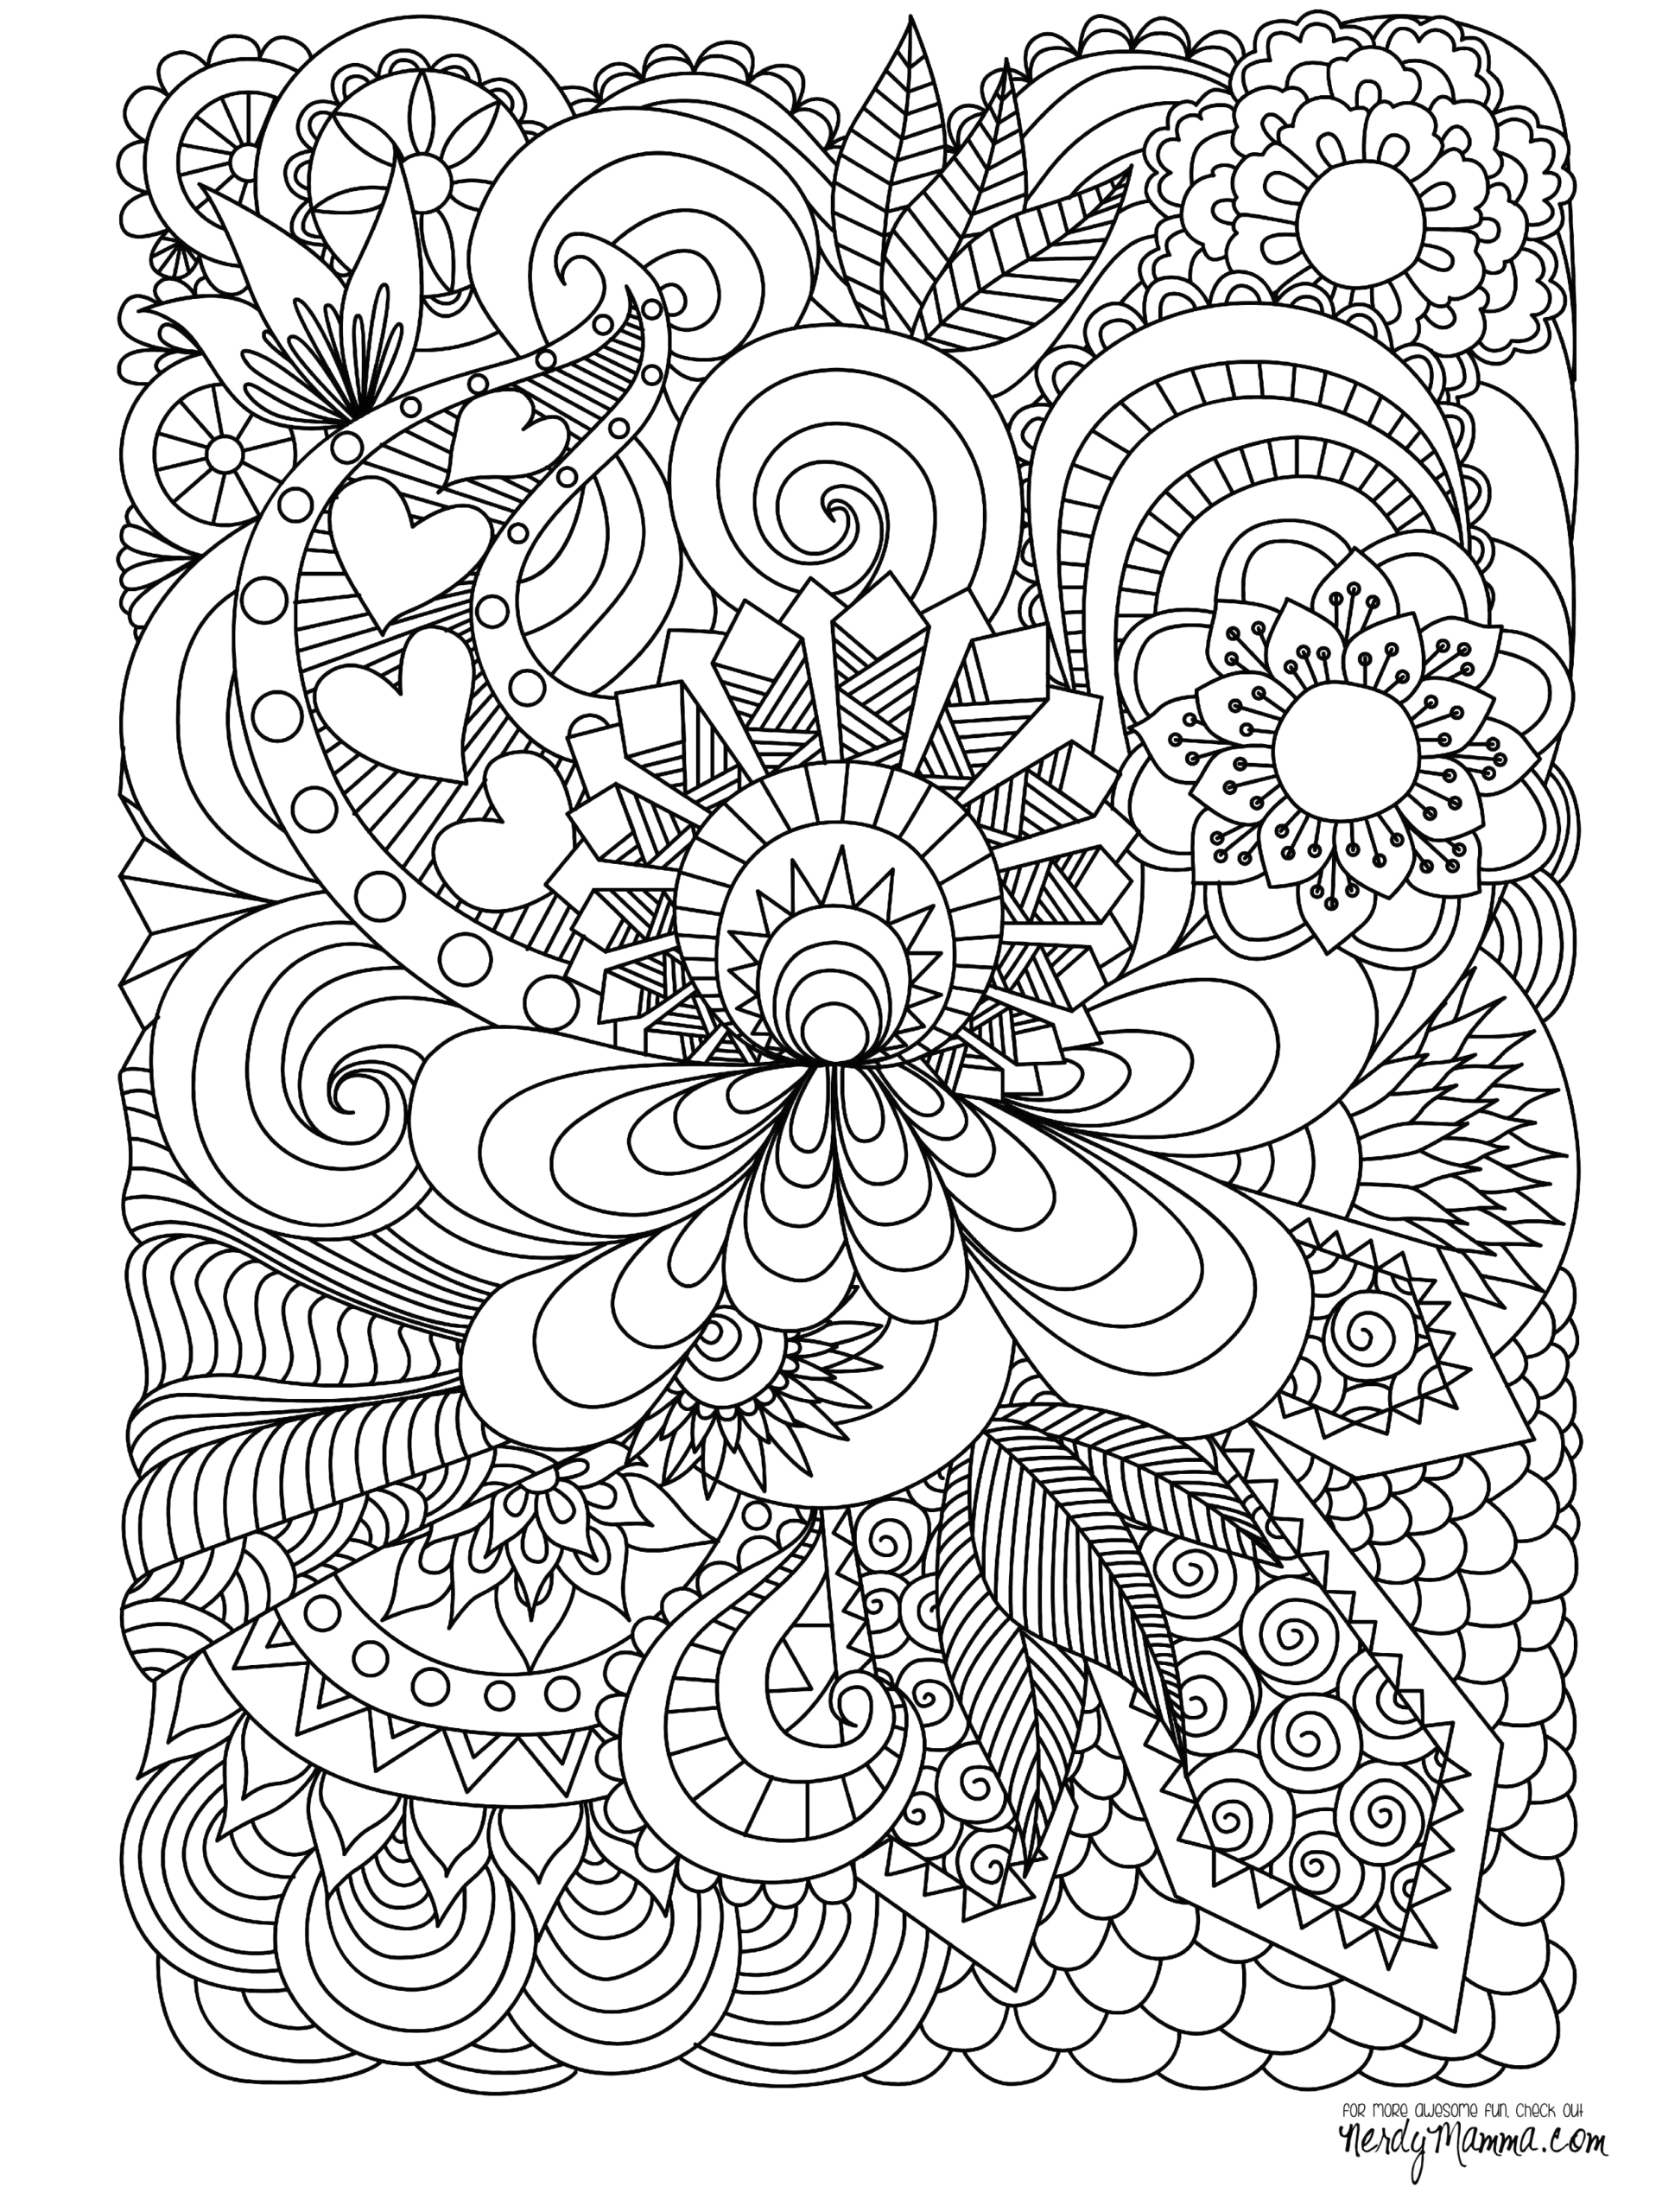 Free Printable Coloring Pages for Adults Advanced Pdf Free Printable Coloring Pages for Adults